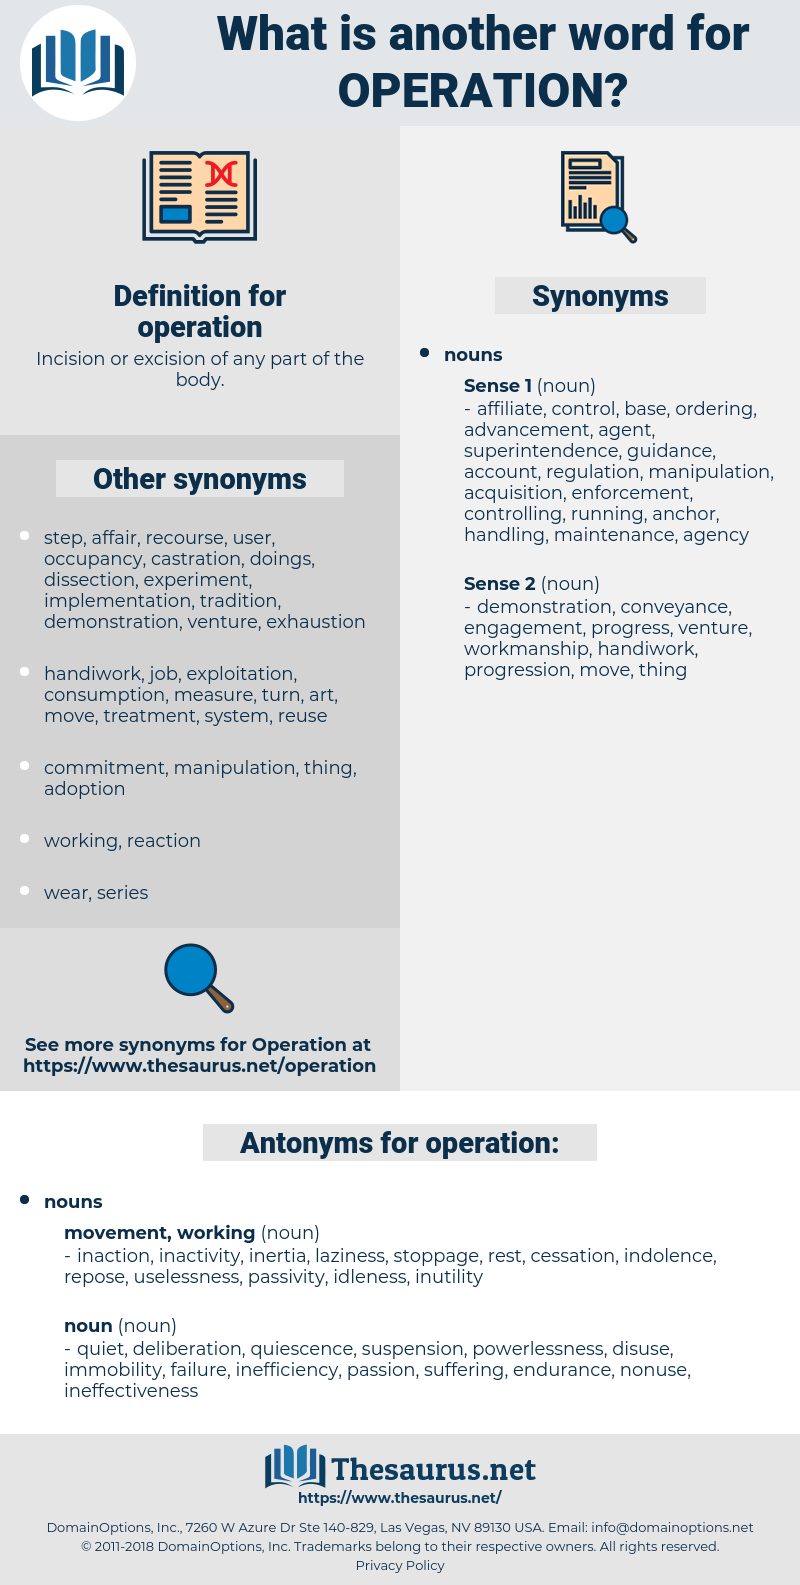 operation, synonym operation, another word for operation, words like operation, thesaurus operation